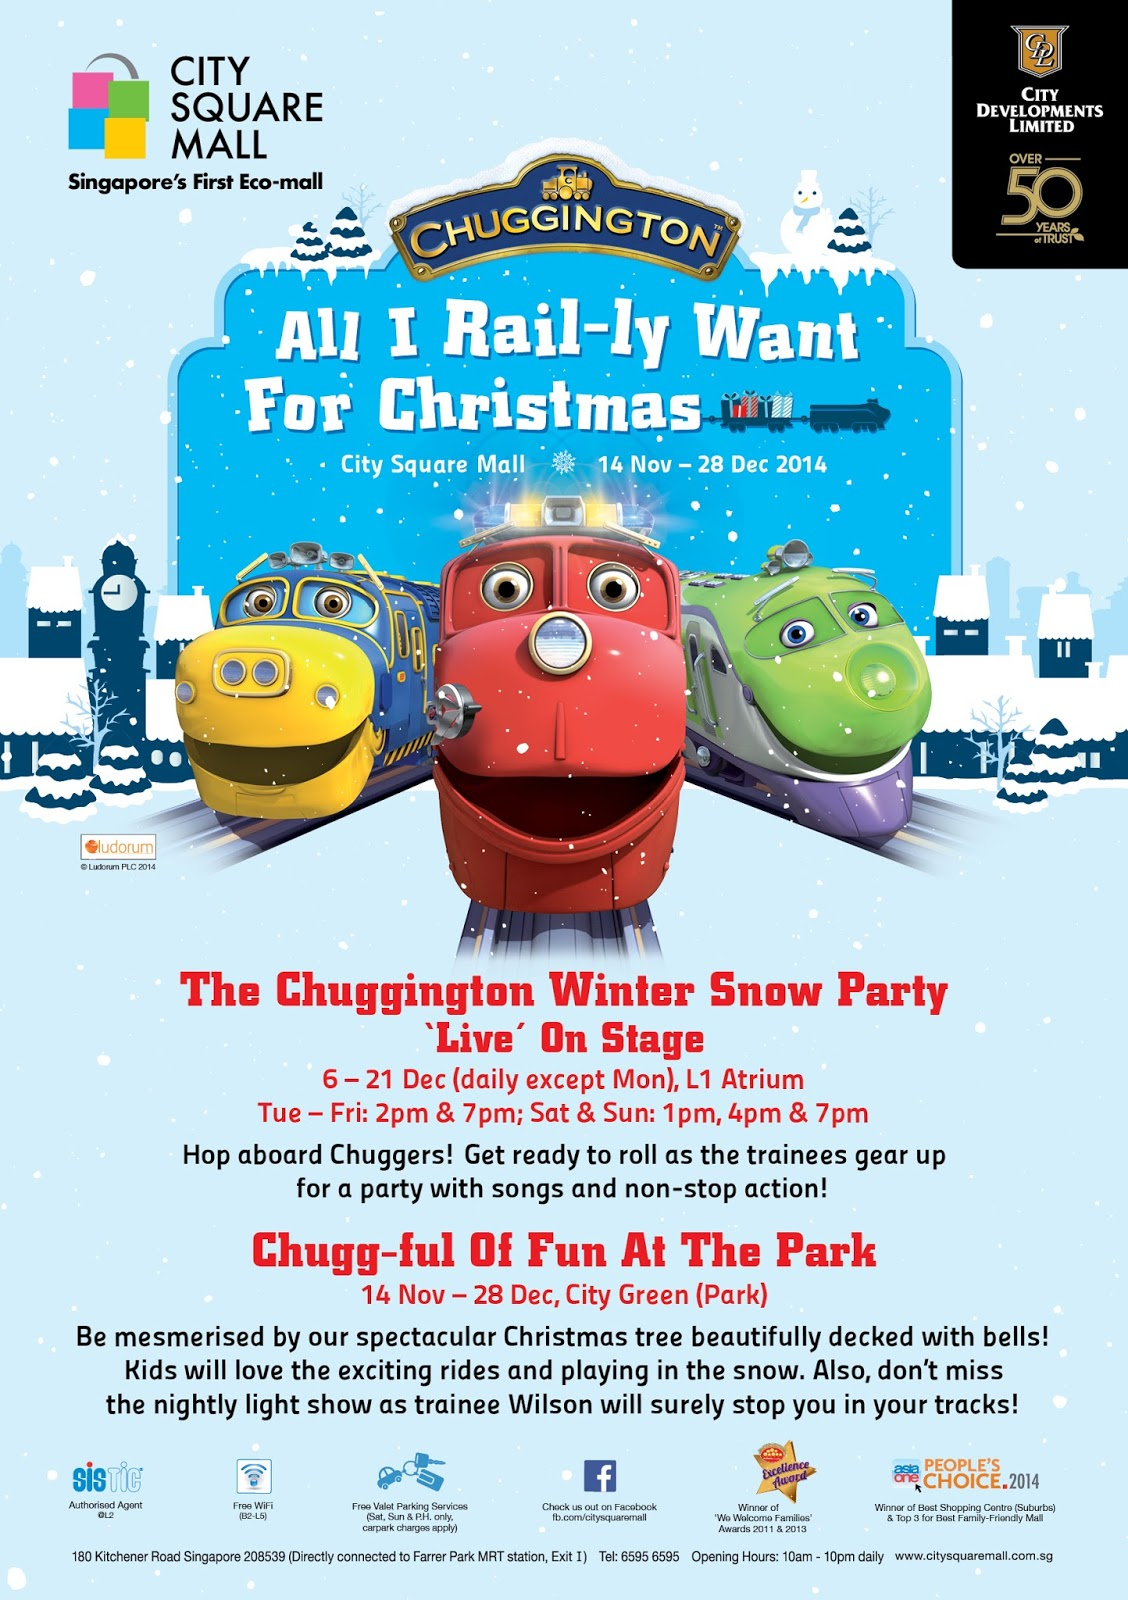 fd2fe62272 Chuggington - All I Rail-ly Want For Christmas